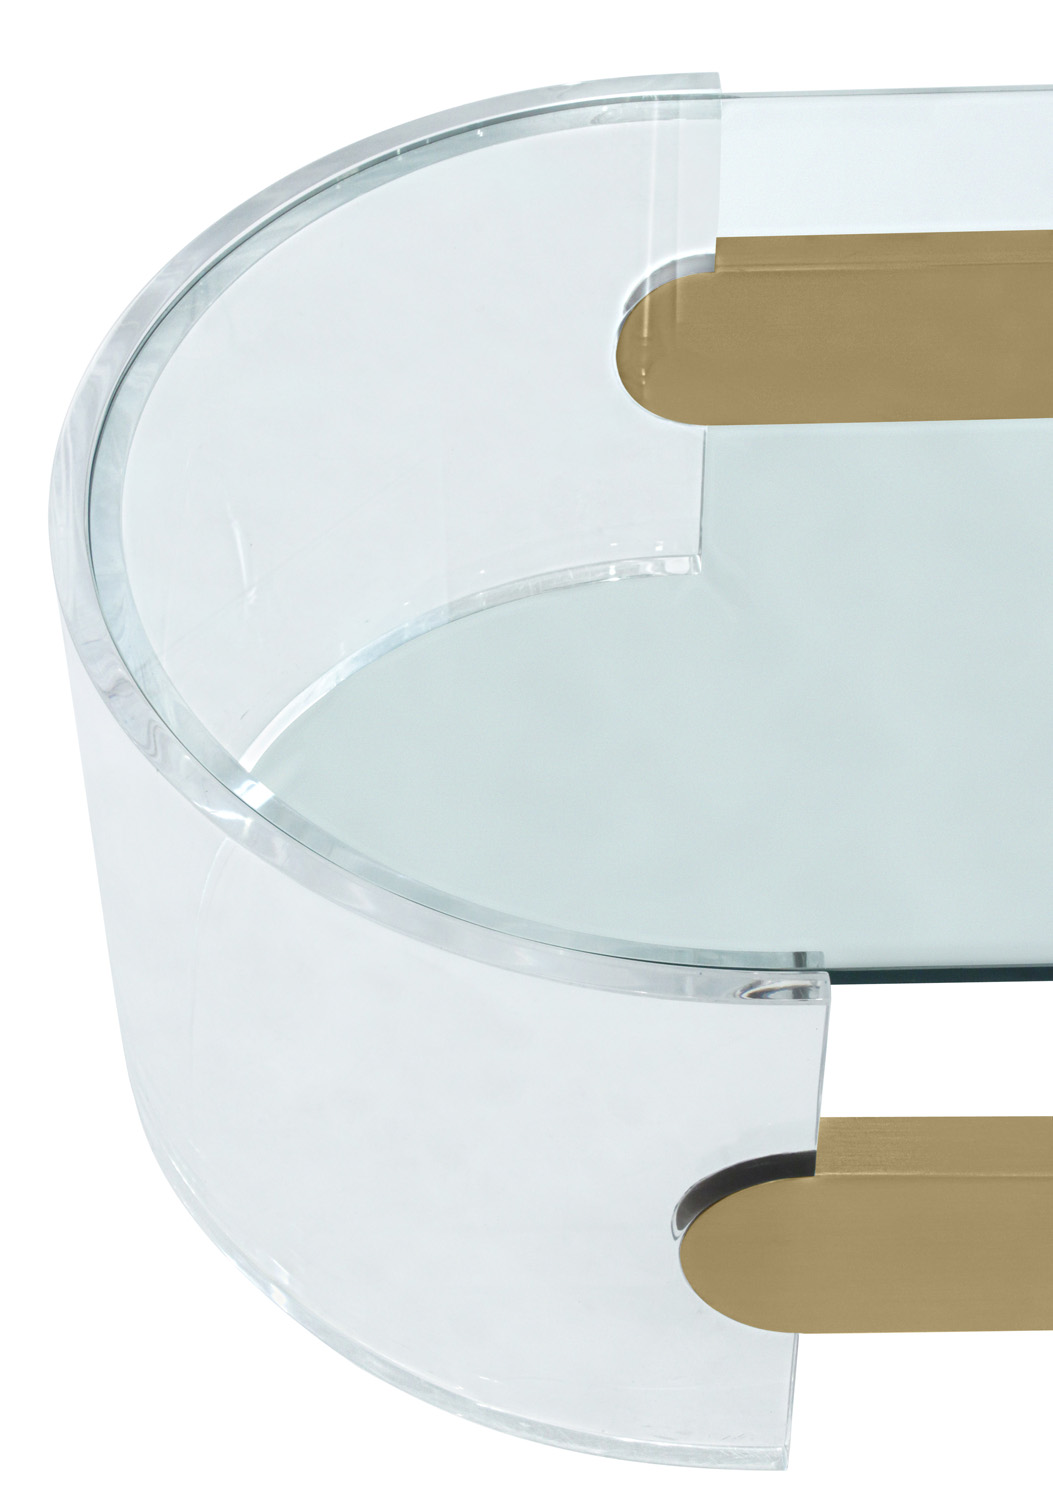 70s 55 lucite+brass oval strtchrs coffeetable374 detail3 hires.jpg